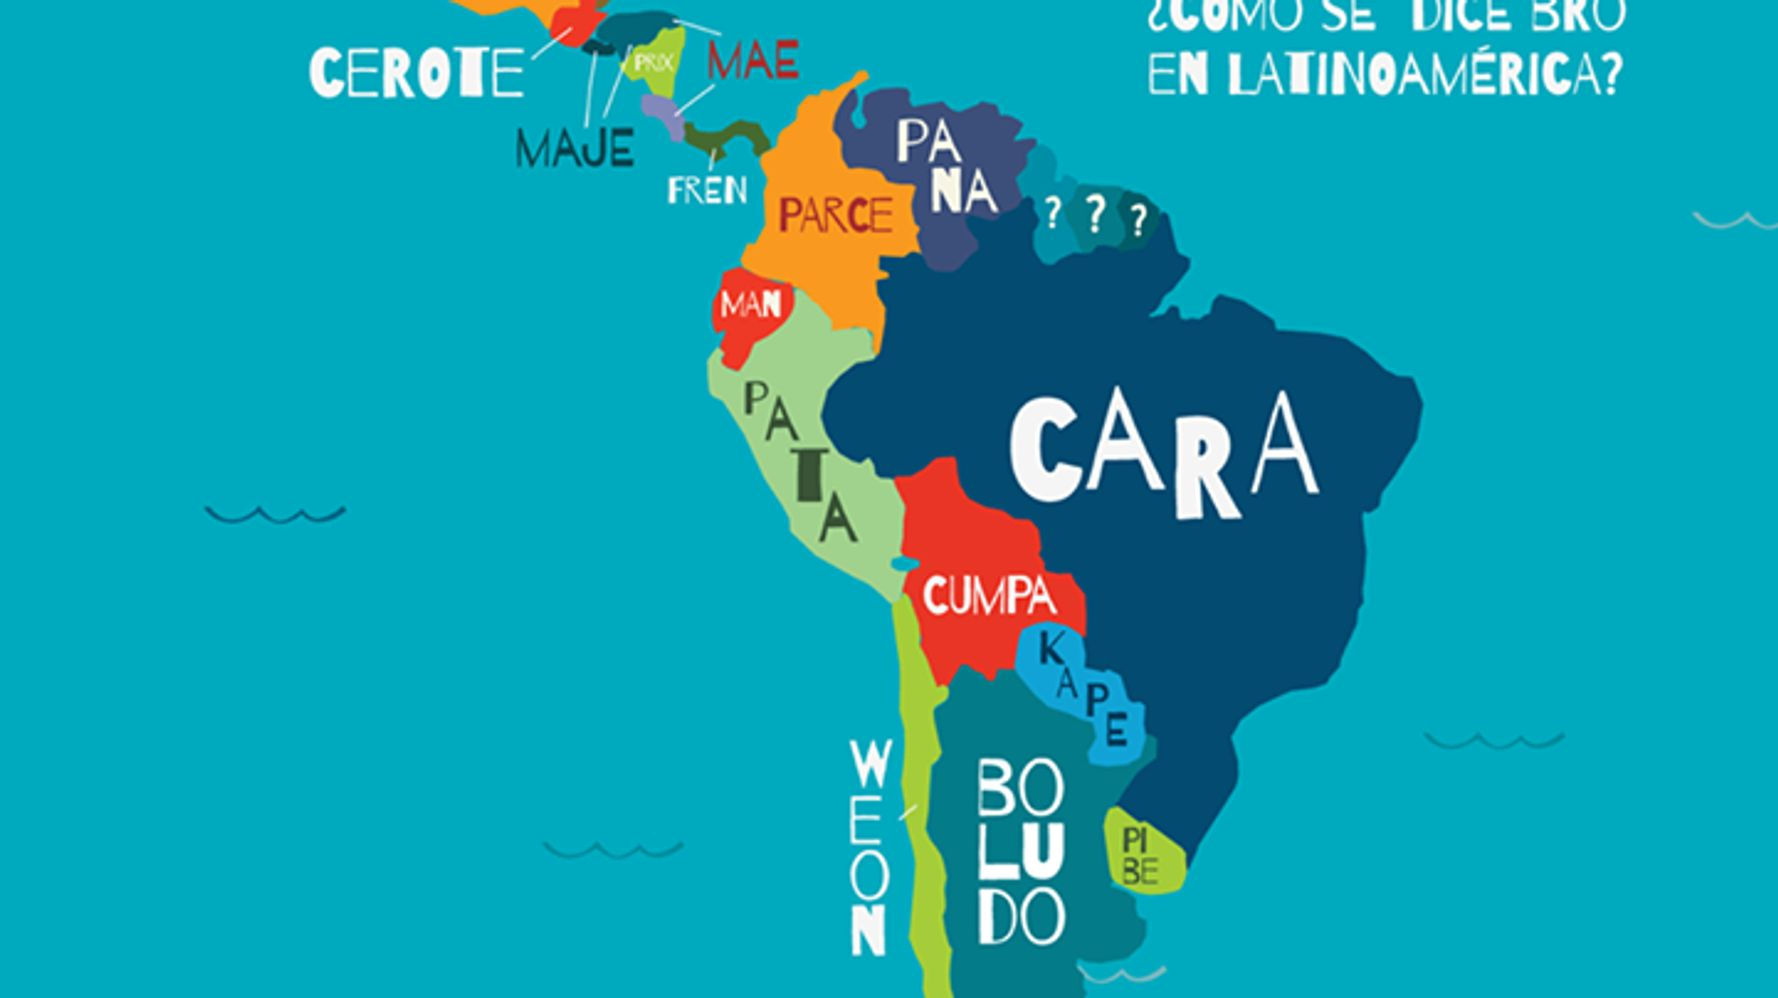 How You Say 'Bro' In Different Latin American Countries